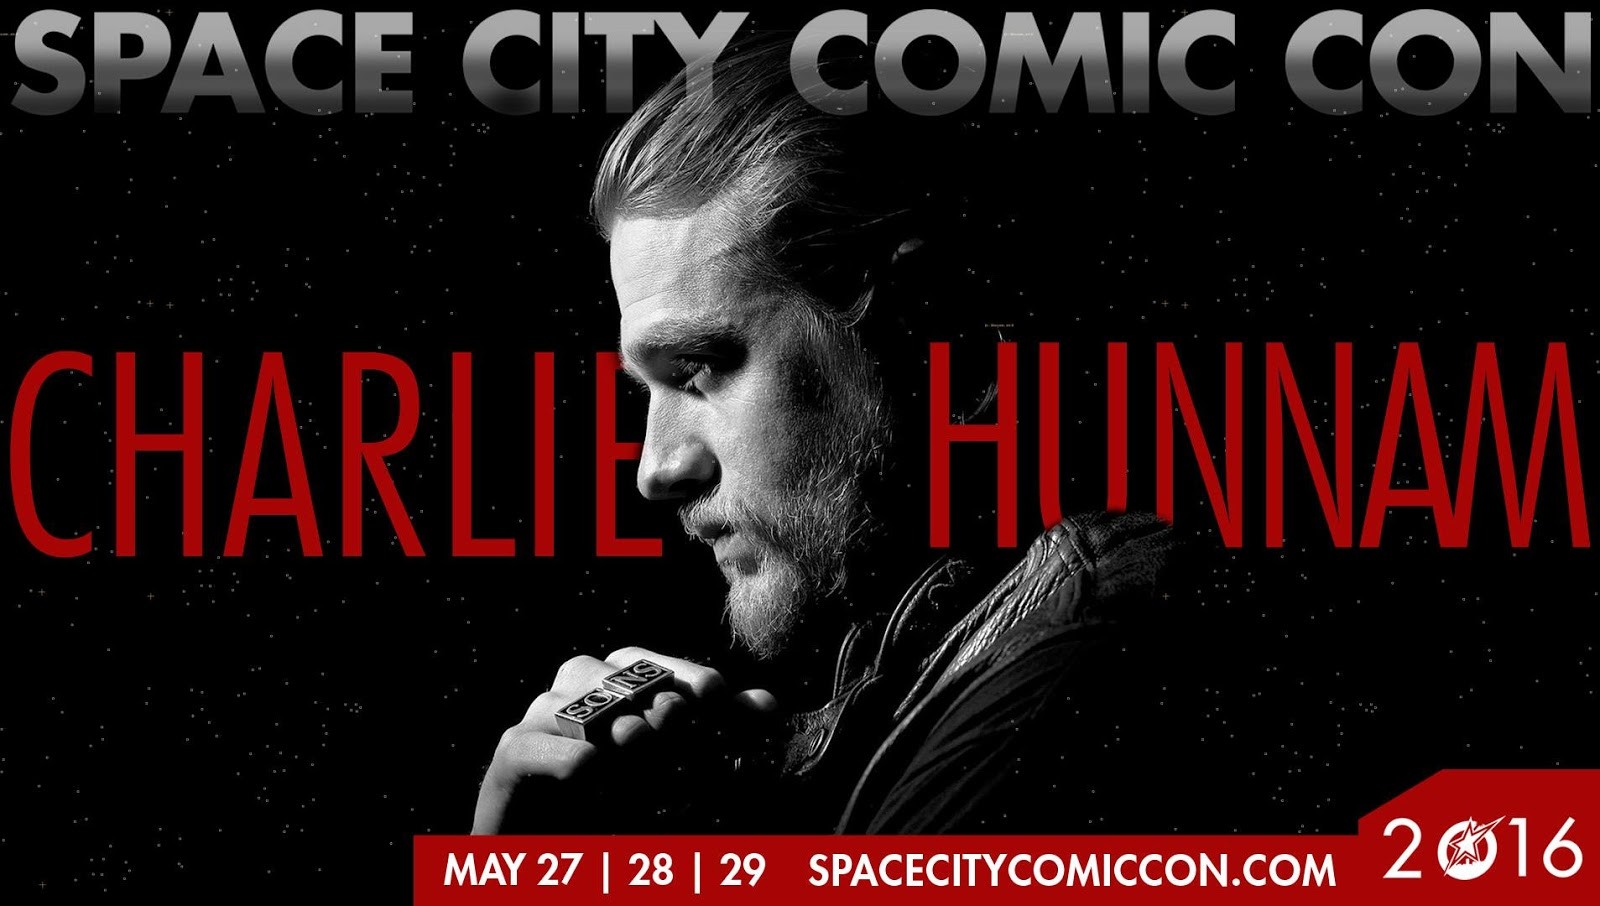 The Sons Of Anarchy Cast Will Reunite At Space City Comic Con 2016 In Houston